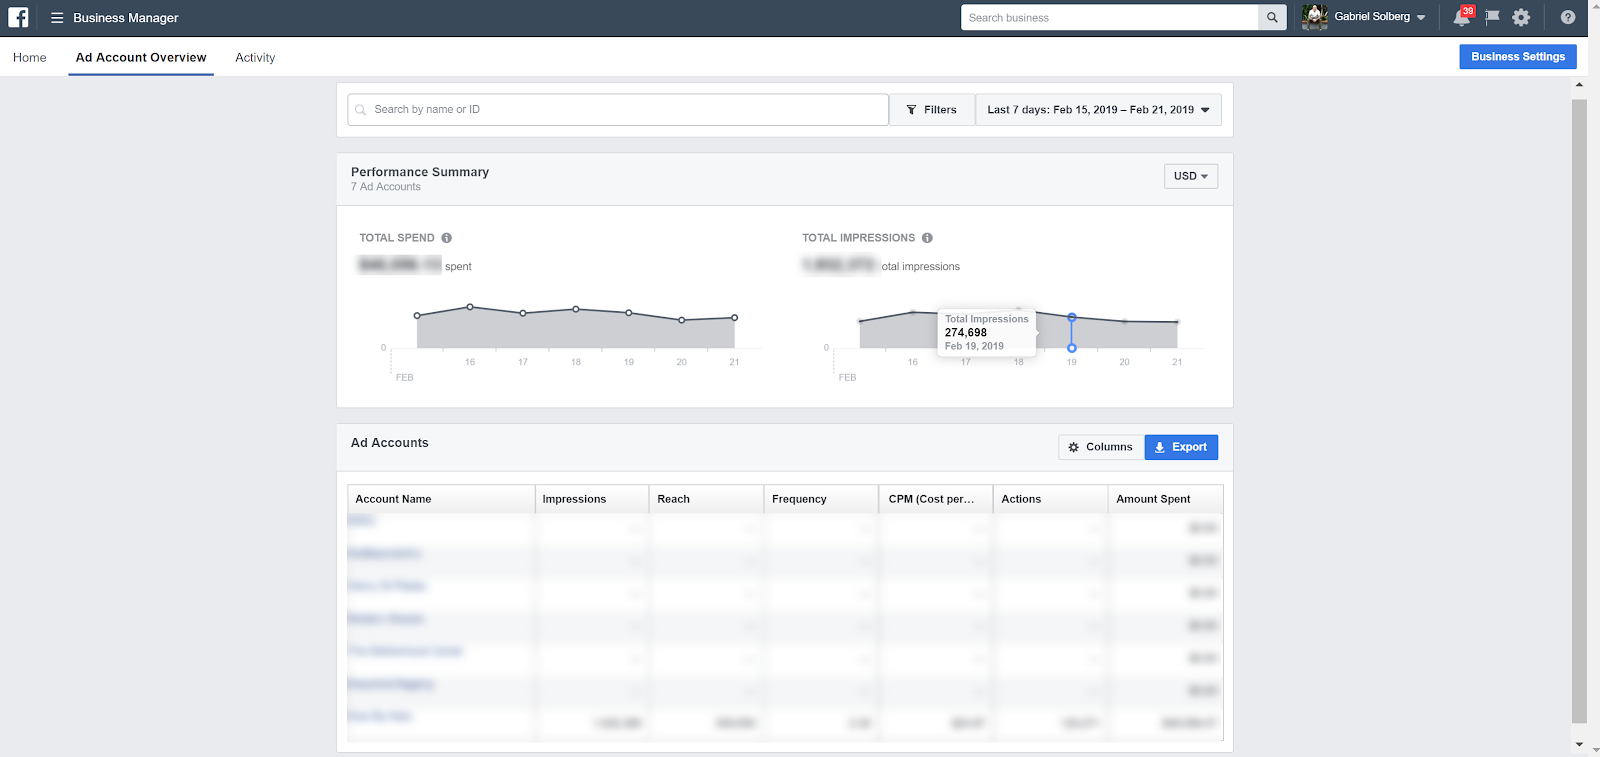 Facebook Business Manager - Ad Account Overview